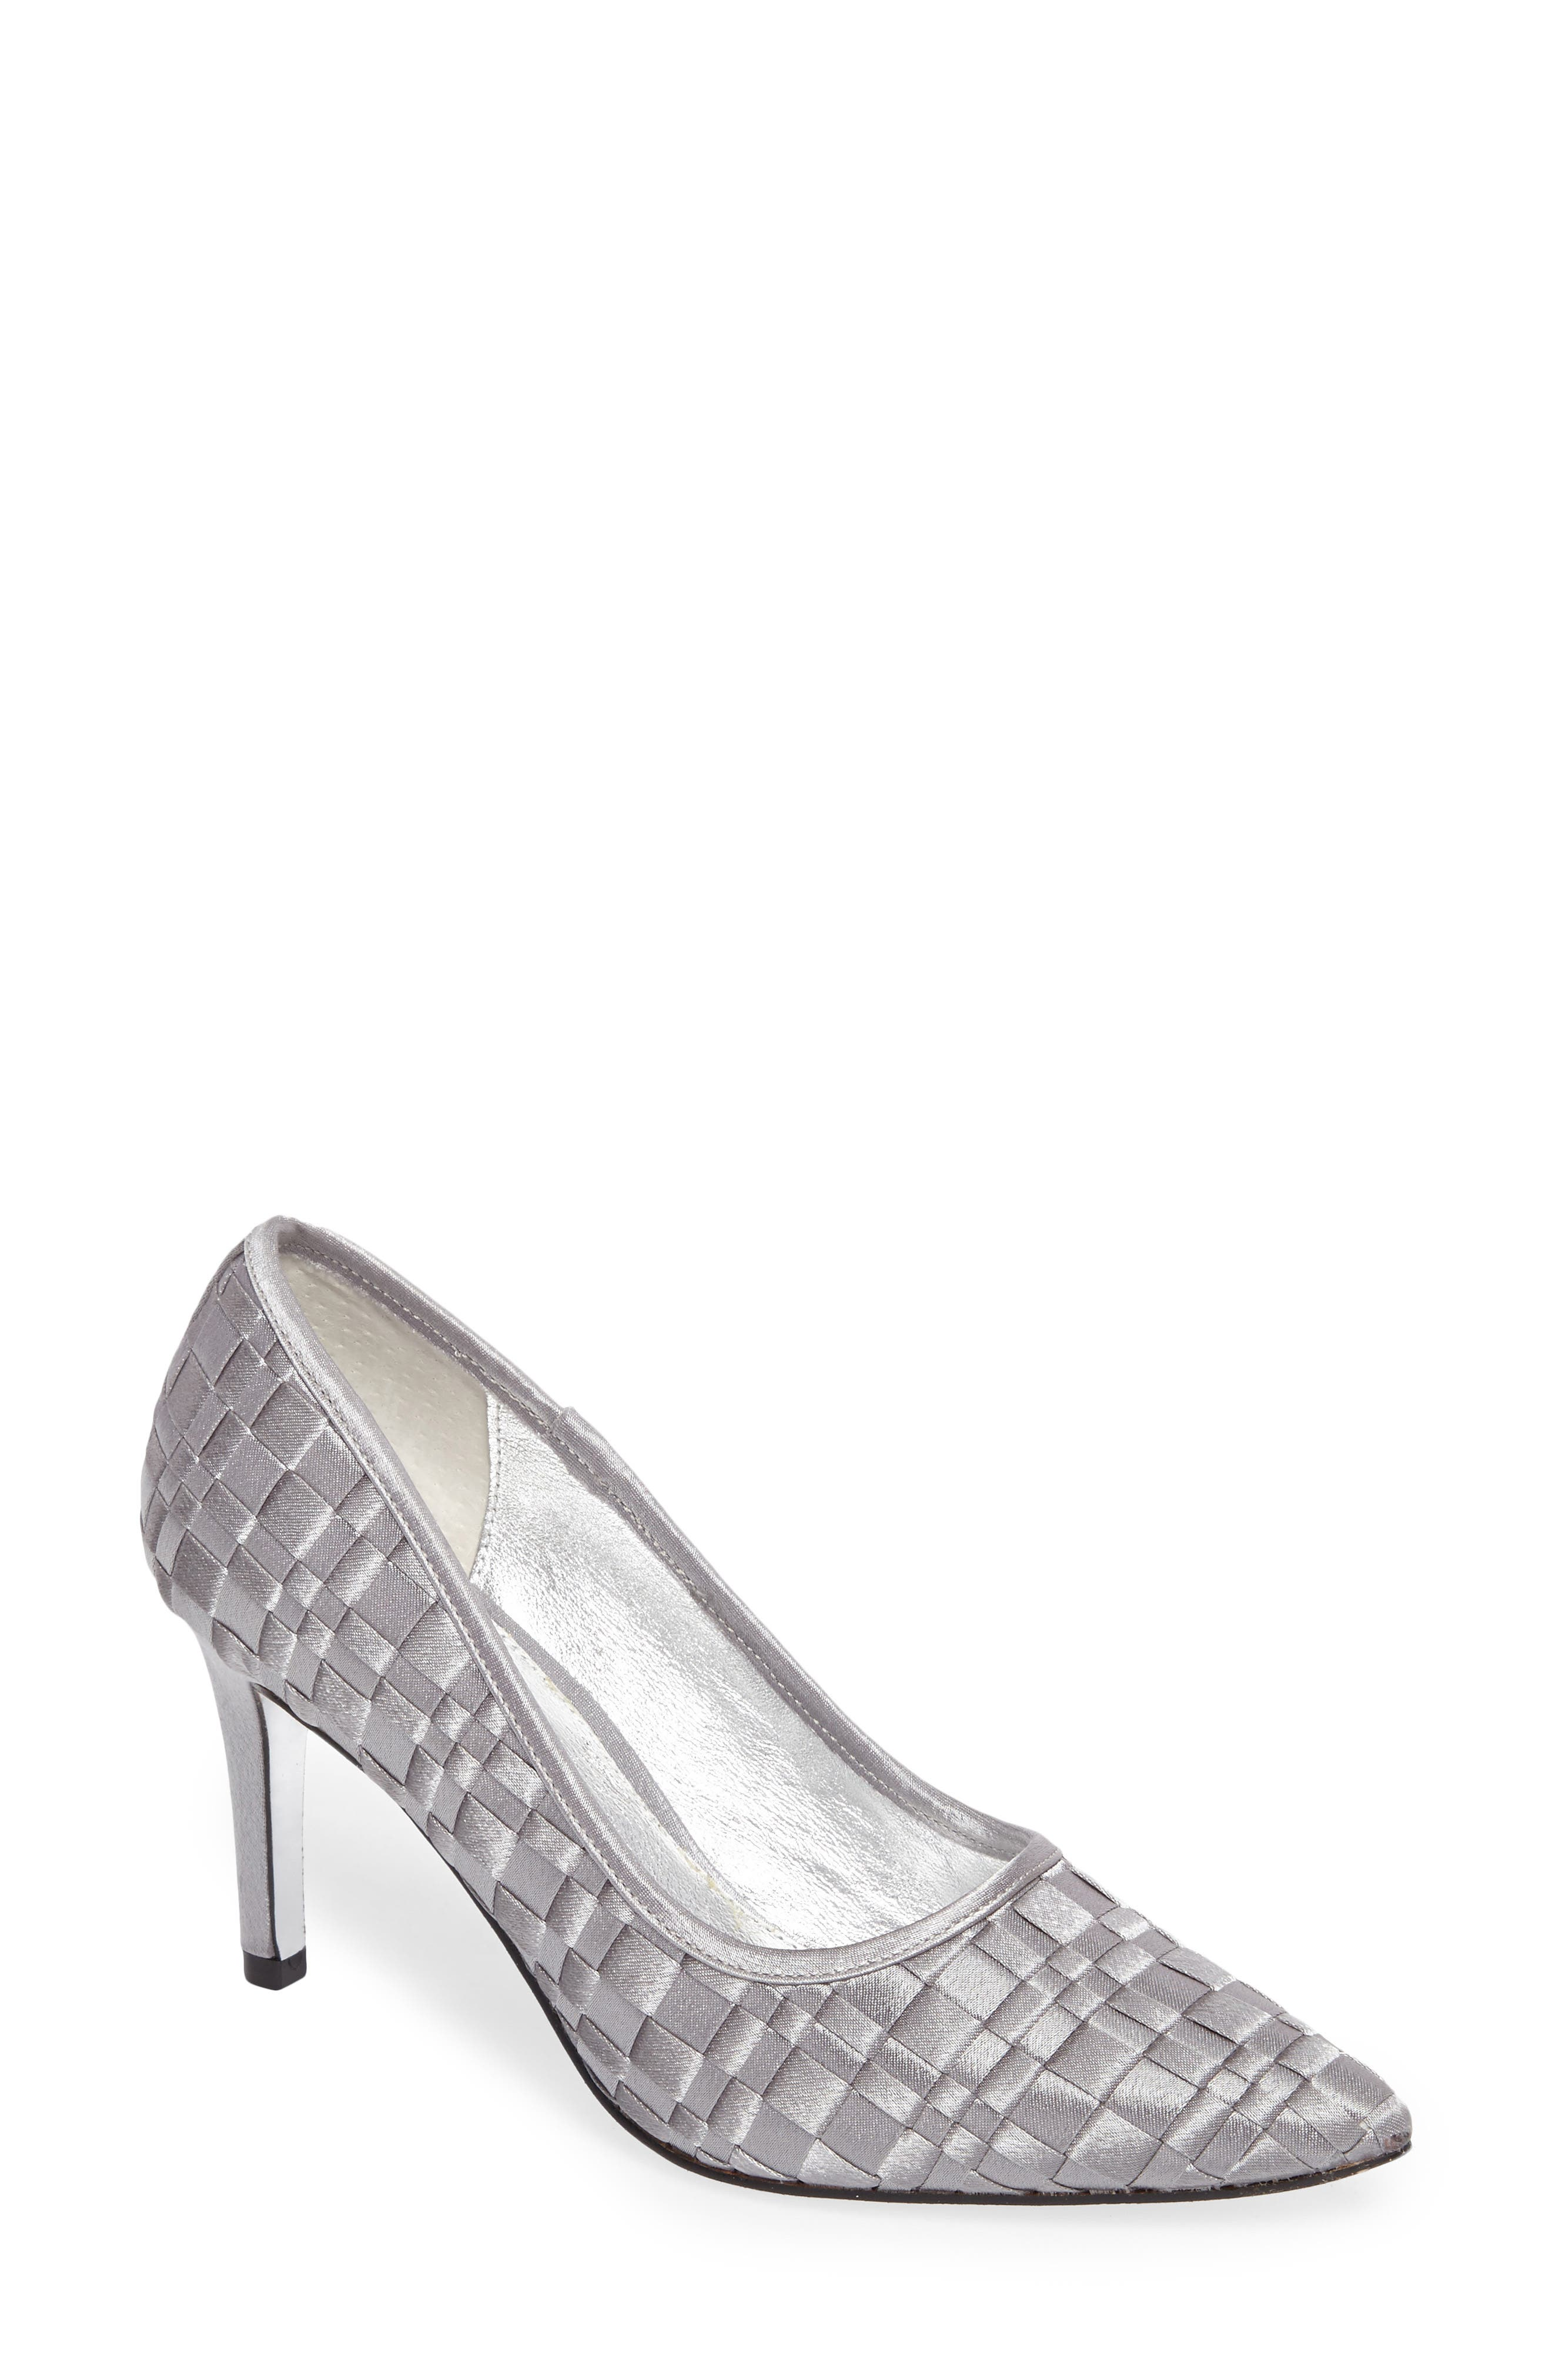 Adrianna Papell Hasting Pointy Toe Pump (Women)